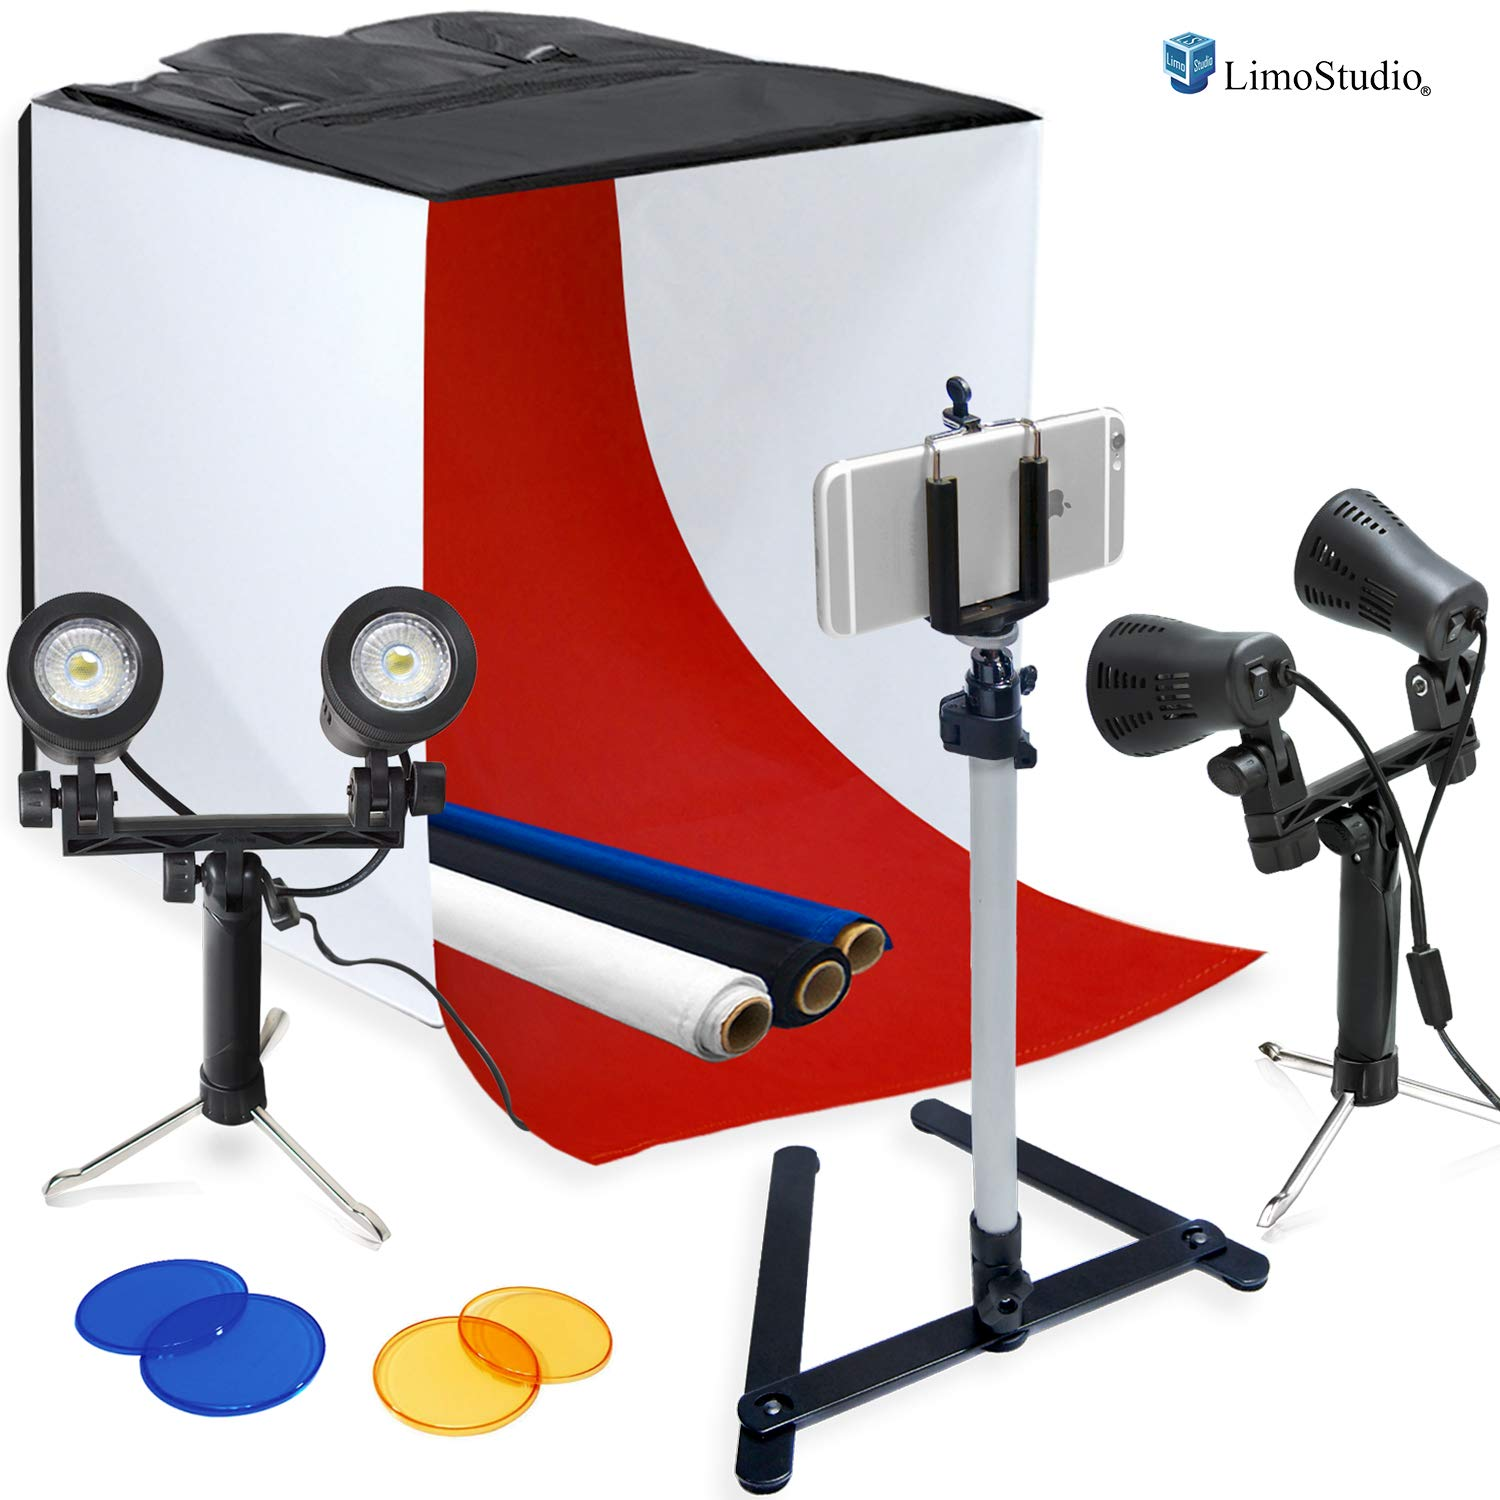 LimoStudio Photography Table Top Photo Light Tent Kit, 24'' Photo Light Box, Continous Lighting Kit, Camera Tripod & Cell Phone Holder AGG1069